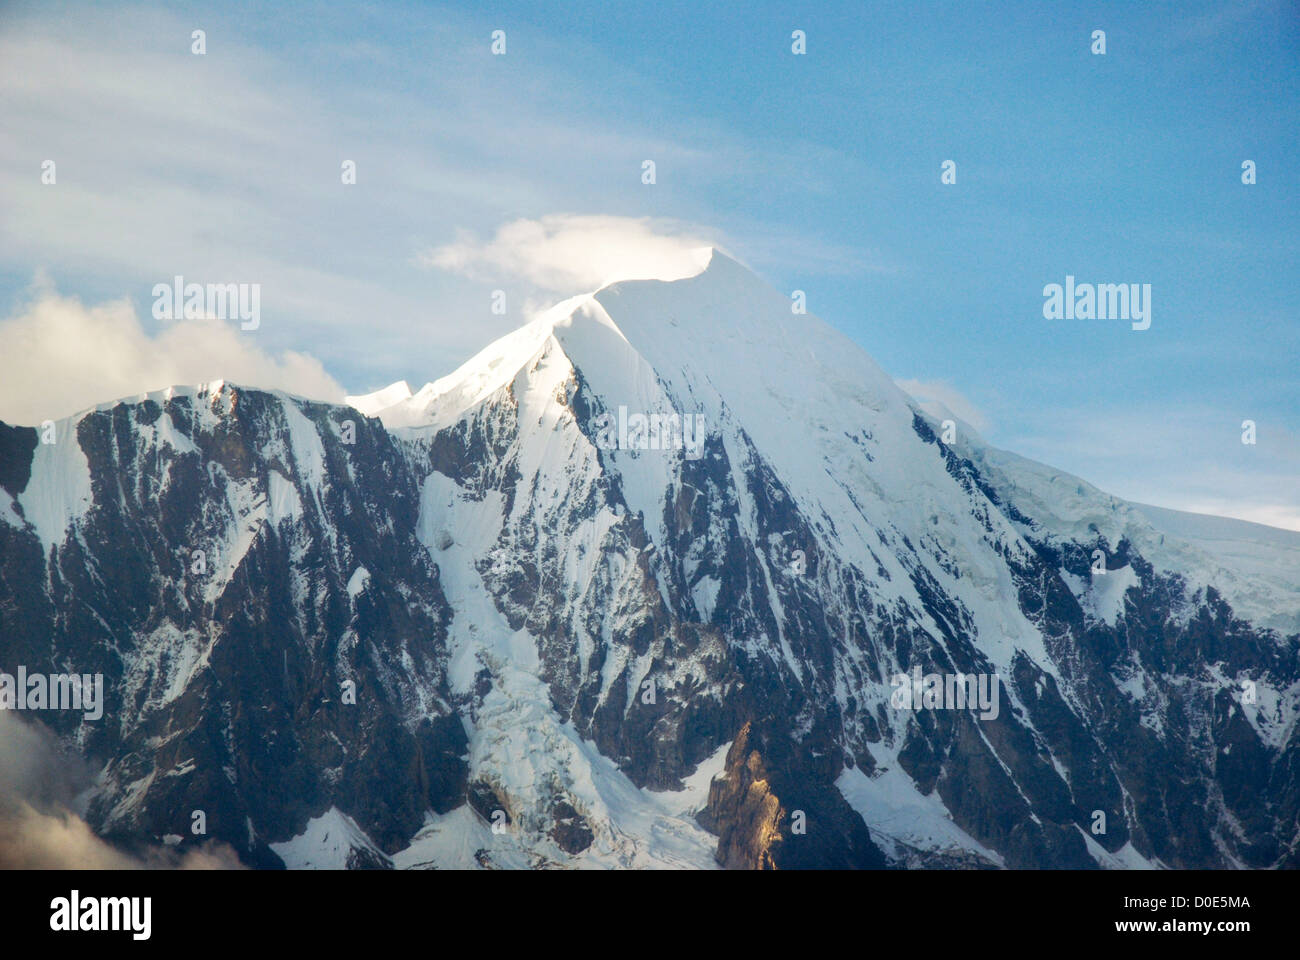 Aerial view of the mountain Illimani, Bolivia - Stock Image